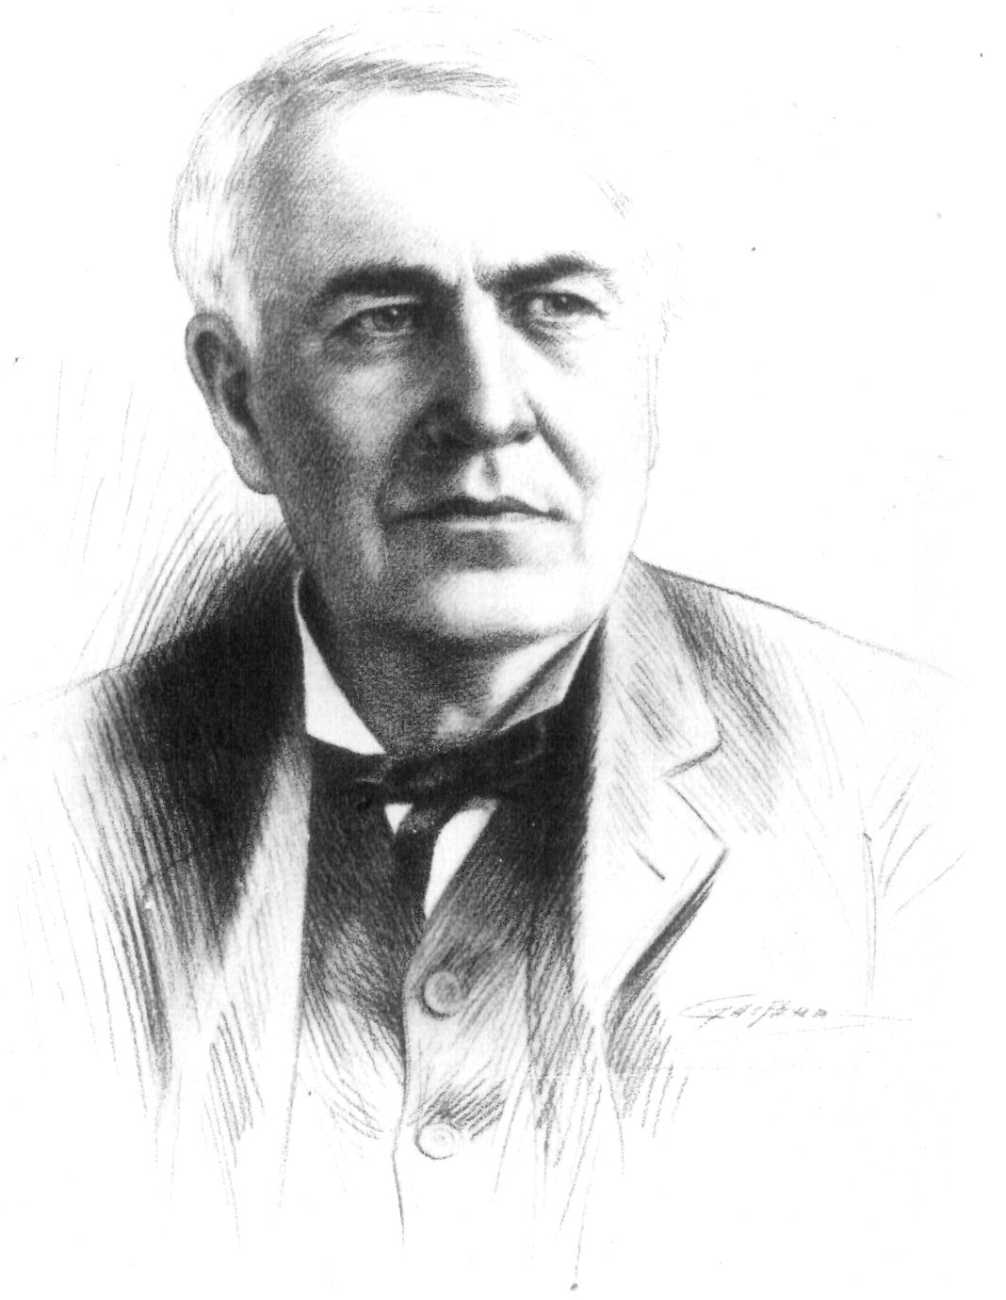 thomas edison He led no armies into battle, he conquered no countries, and he enslaved no peoples nonetheless, he exerted a degree of power the magnitude of which no warrior ever dreamed.